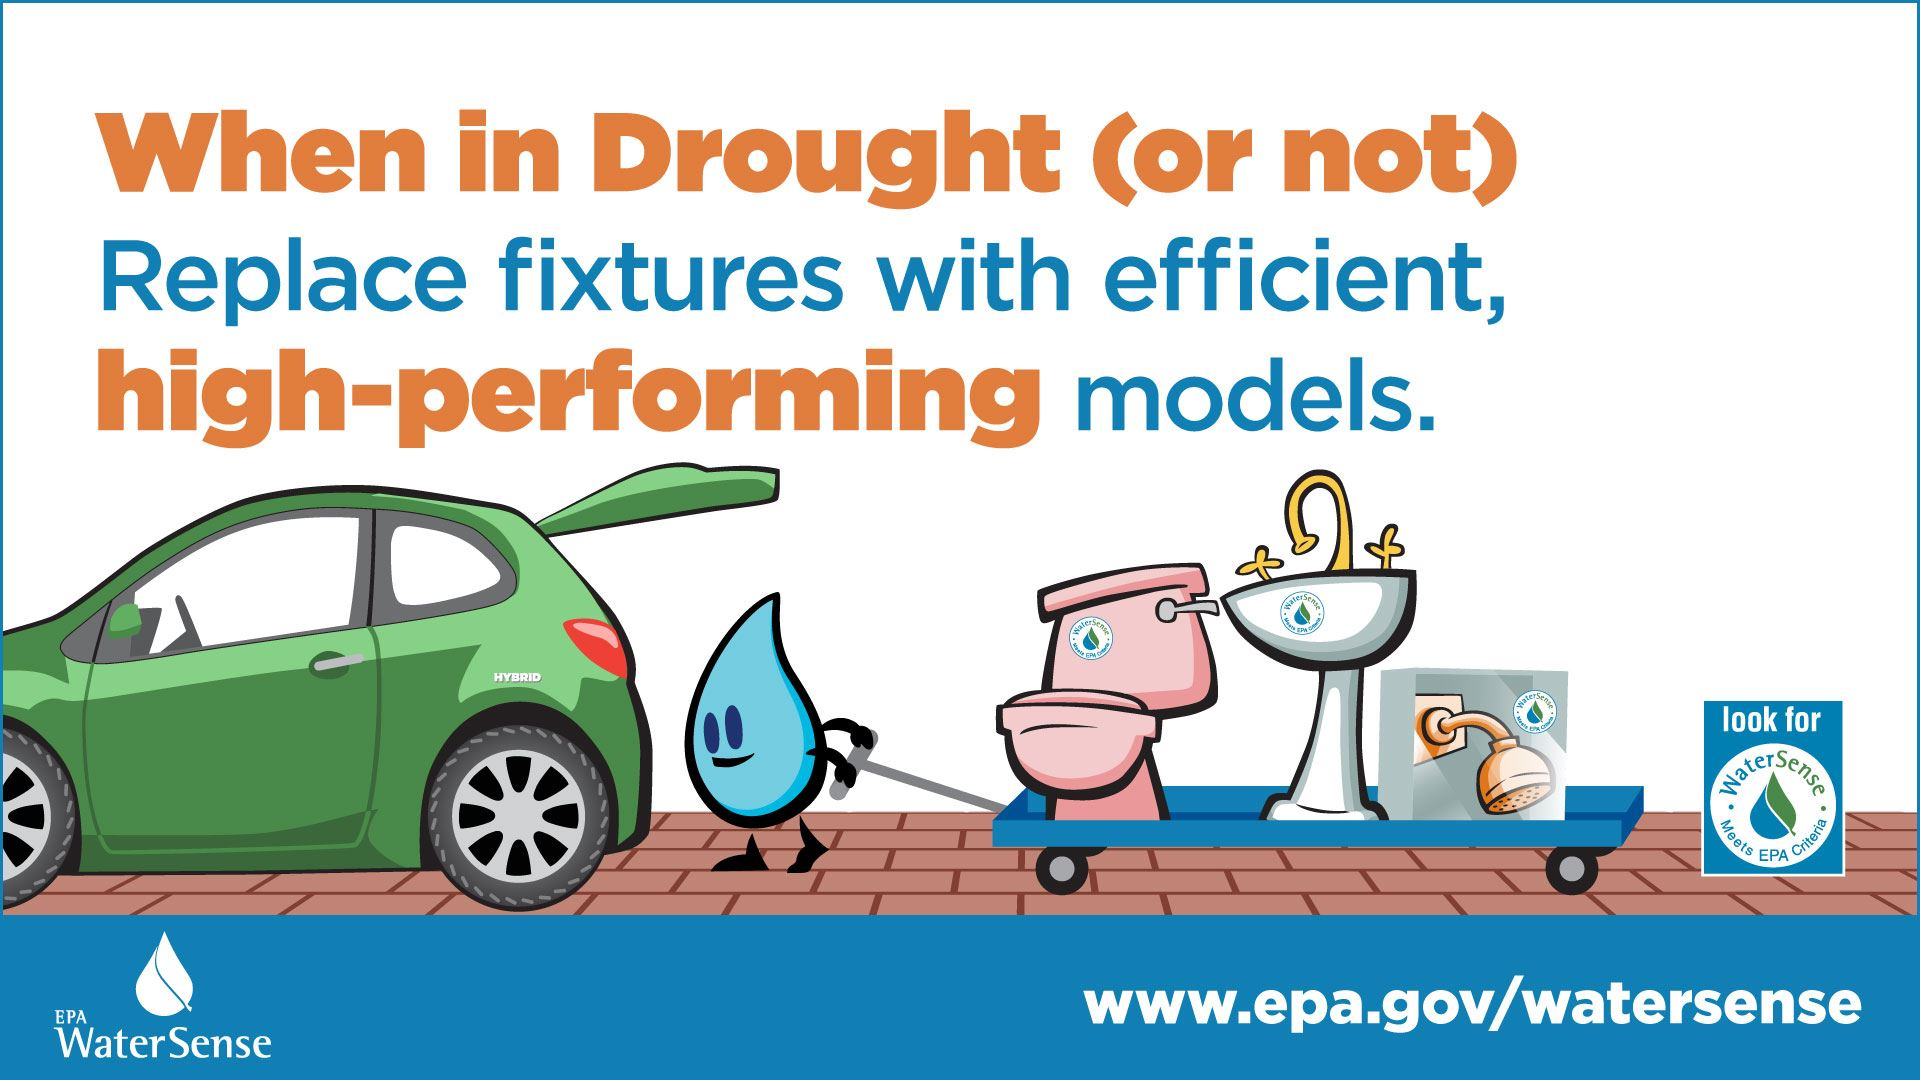 WaterSense reminder that when in drought to replace fixtures with high performing models